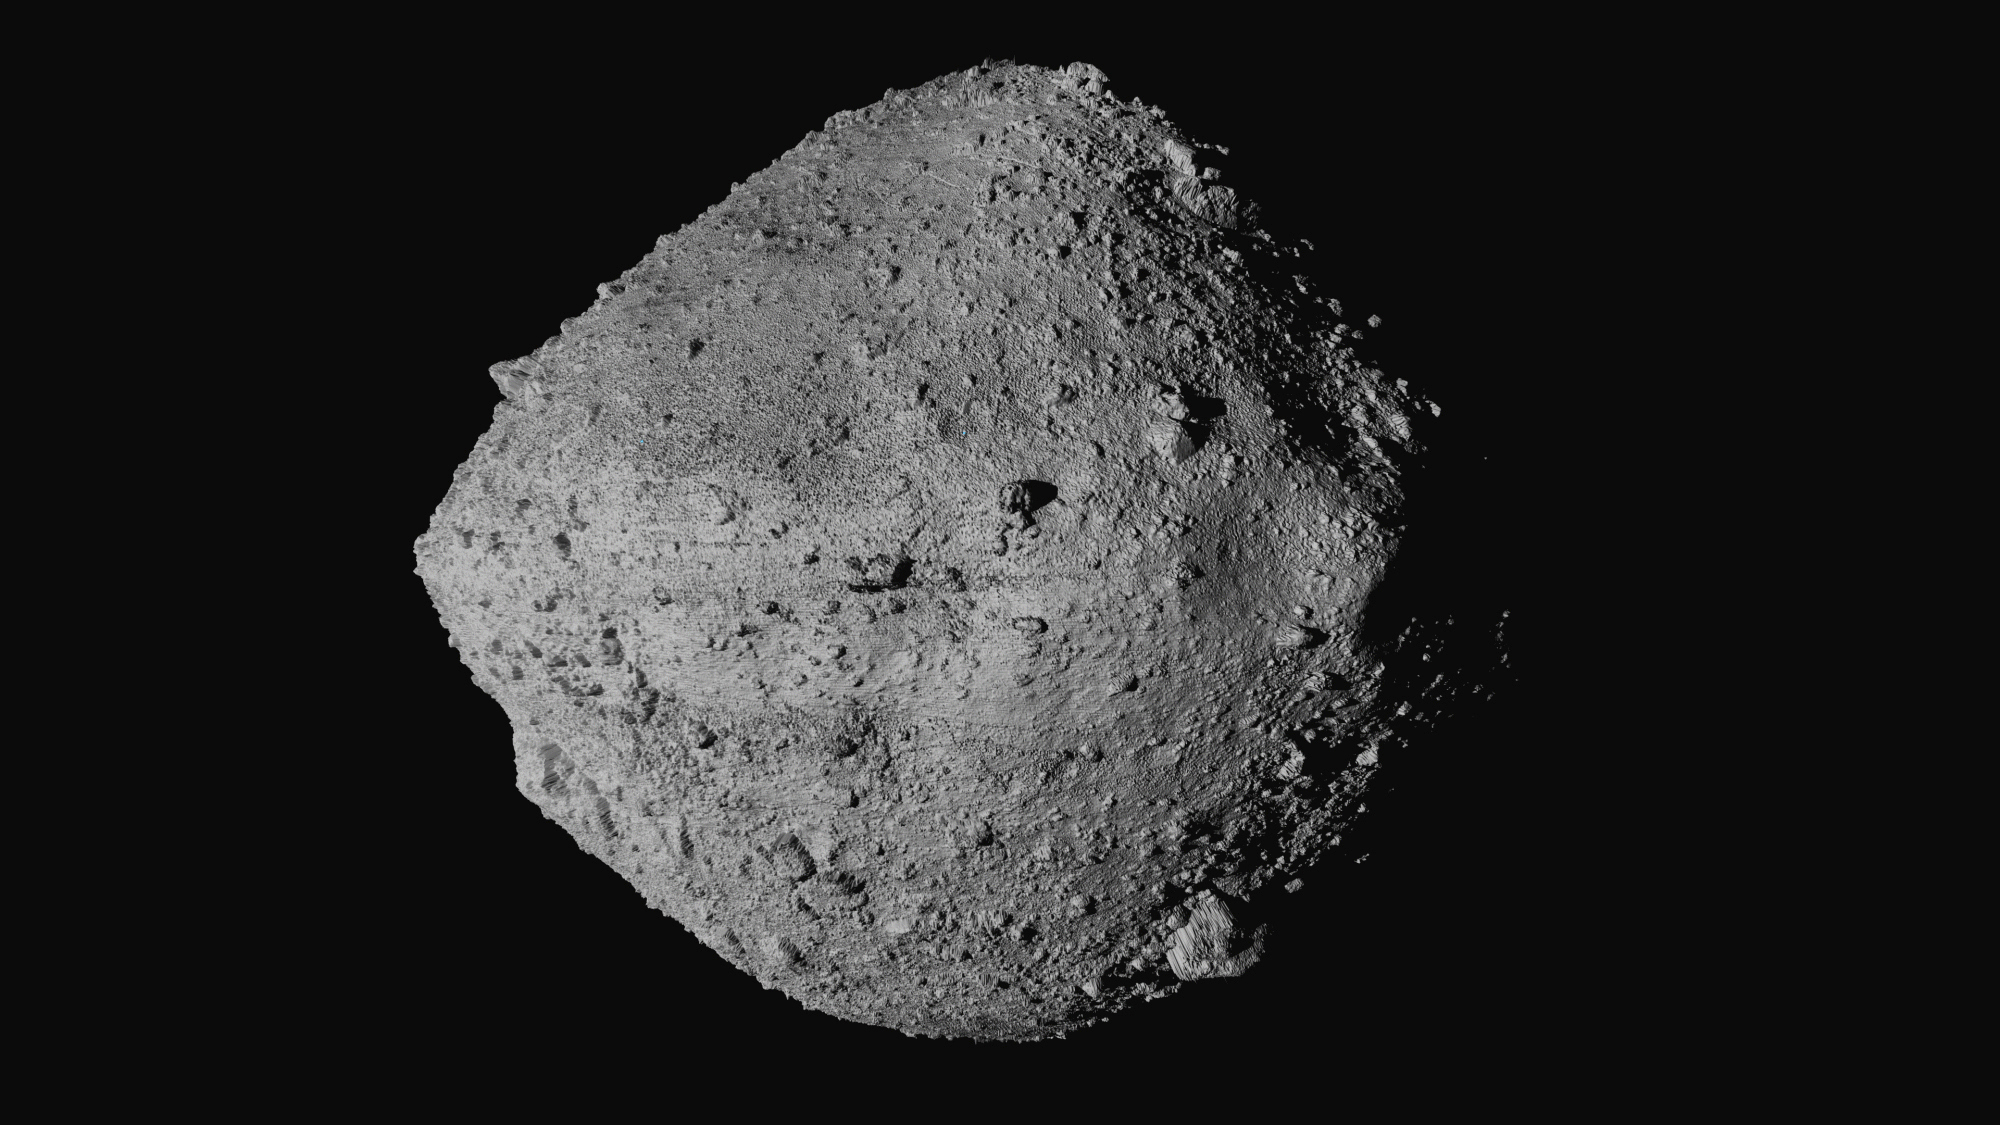 This undated image made available by NASA shows the asteroid Bennu from the OSIRIS-REx spacecraft. After almost two years circling the ancient asteroid OSIRIS-REx will attempt to descend to the treacherous boulder-packed surface and snatch a handful